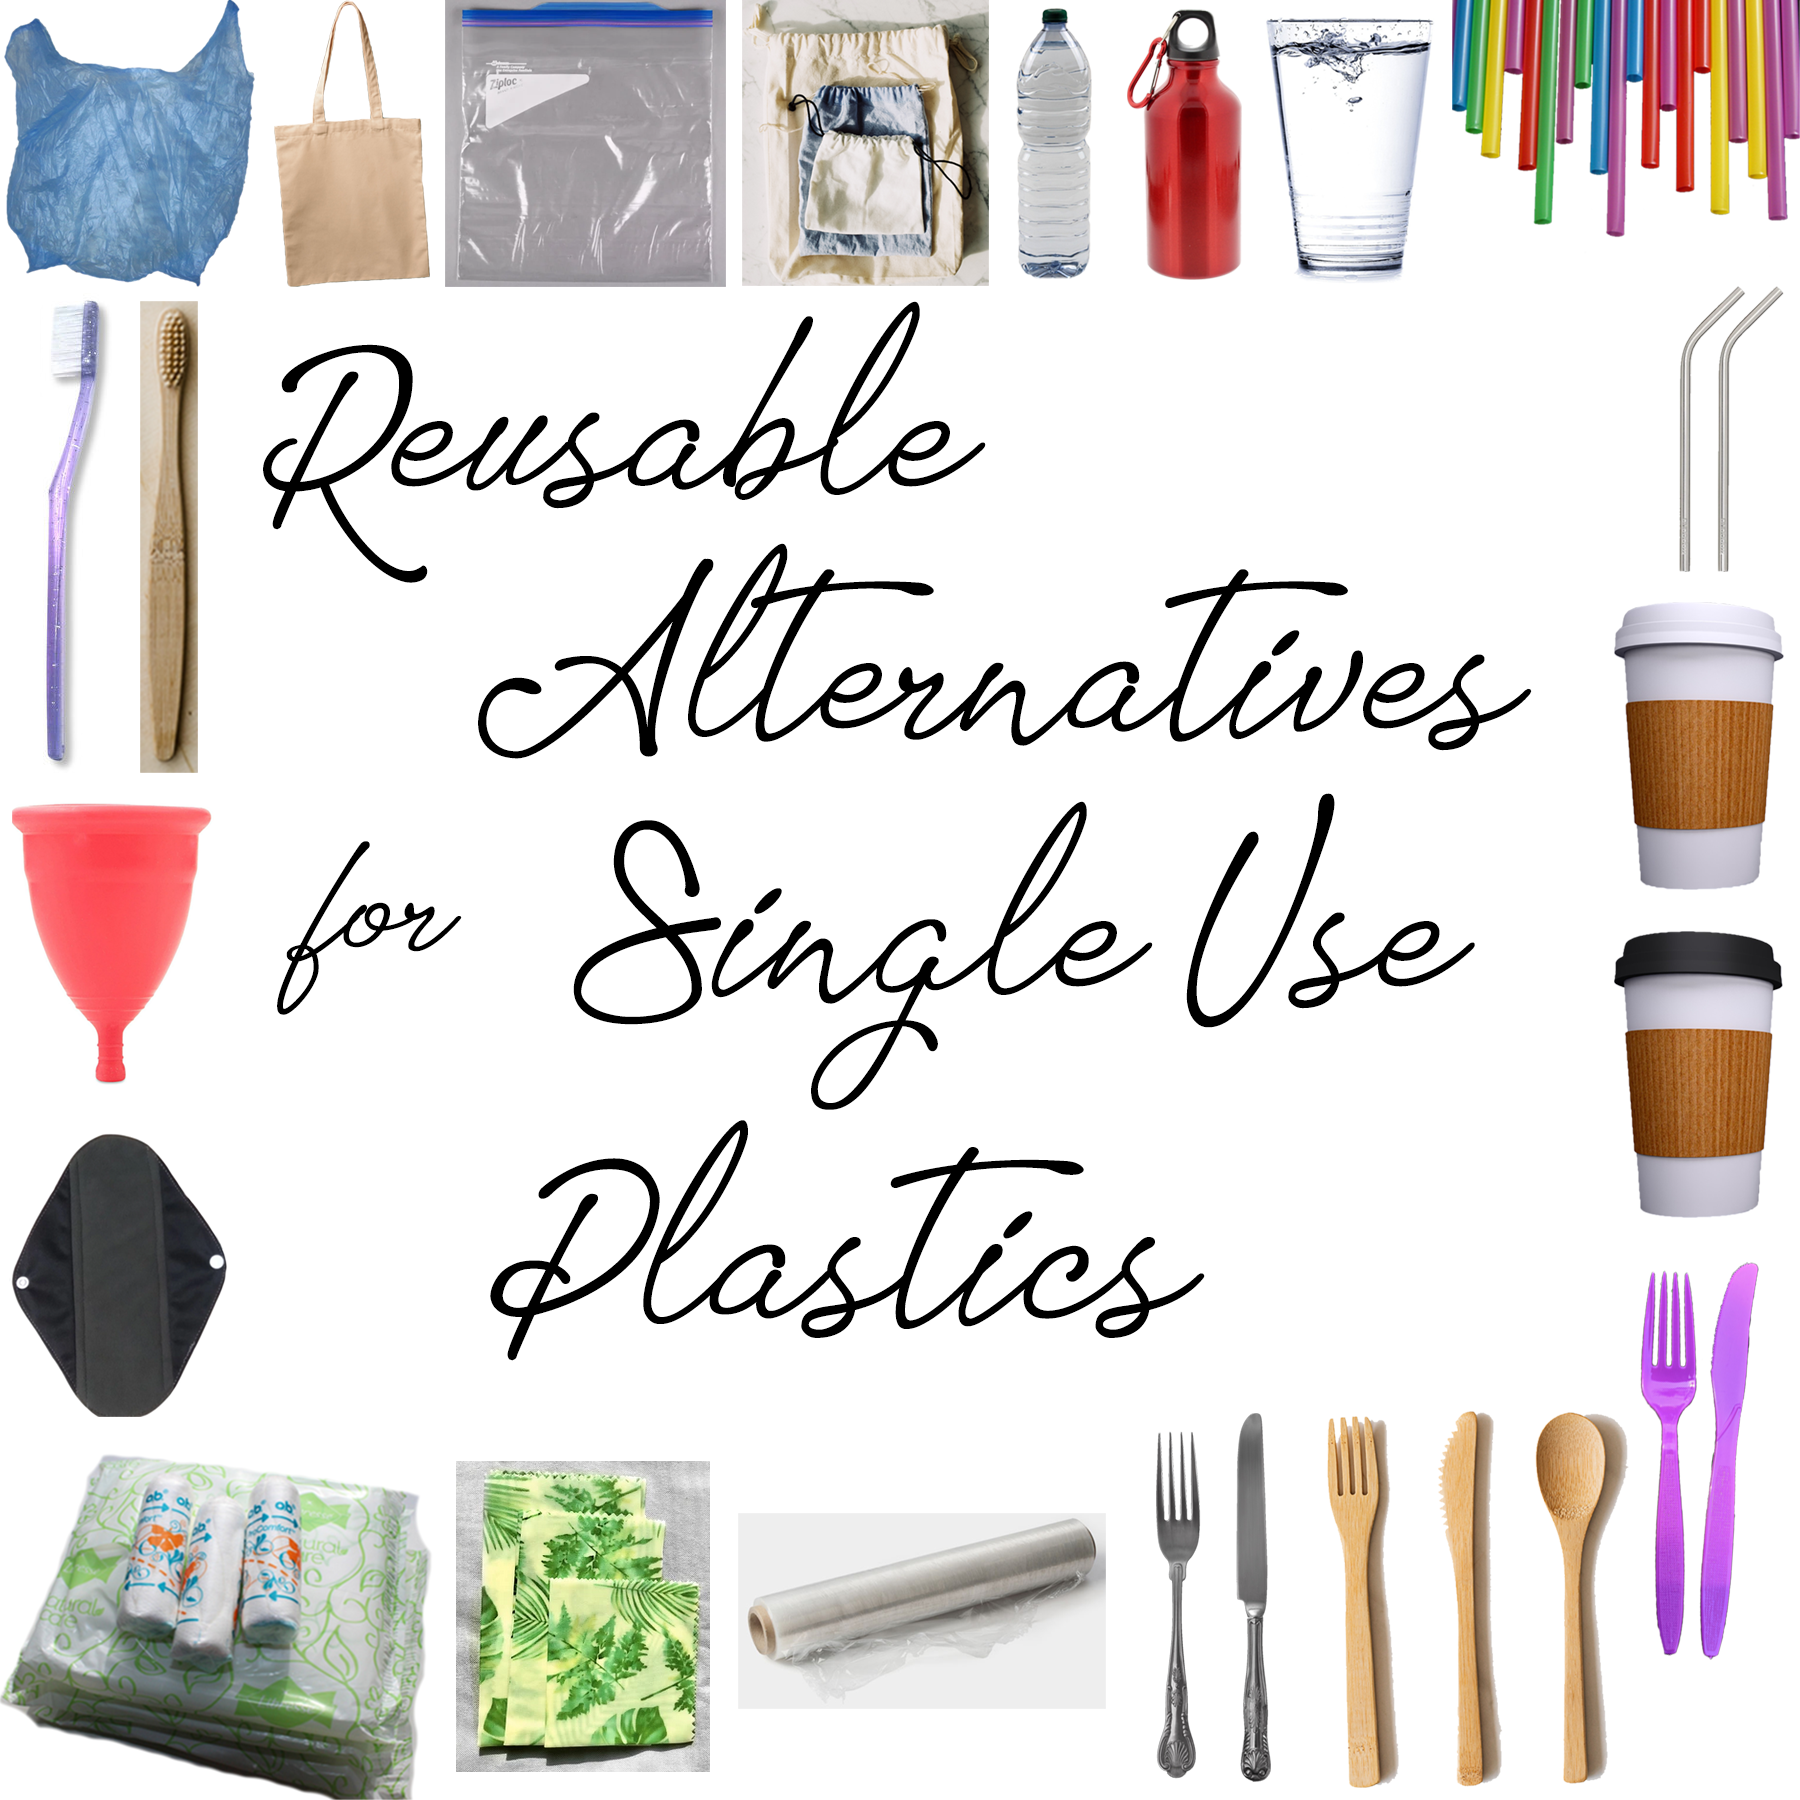 AterImber.com - No Mad - Reusable Alternatives for Single Use Plastics - Nutrient Collage Series - Omega-3's Collage - vegan tips, vegan food, vegan blogger, health tips, nutrients, Omega-3's, vegan food blogger, new vegan tips